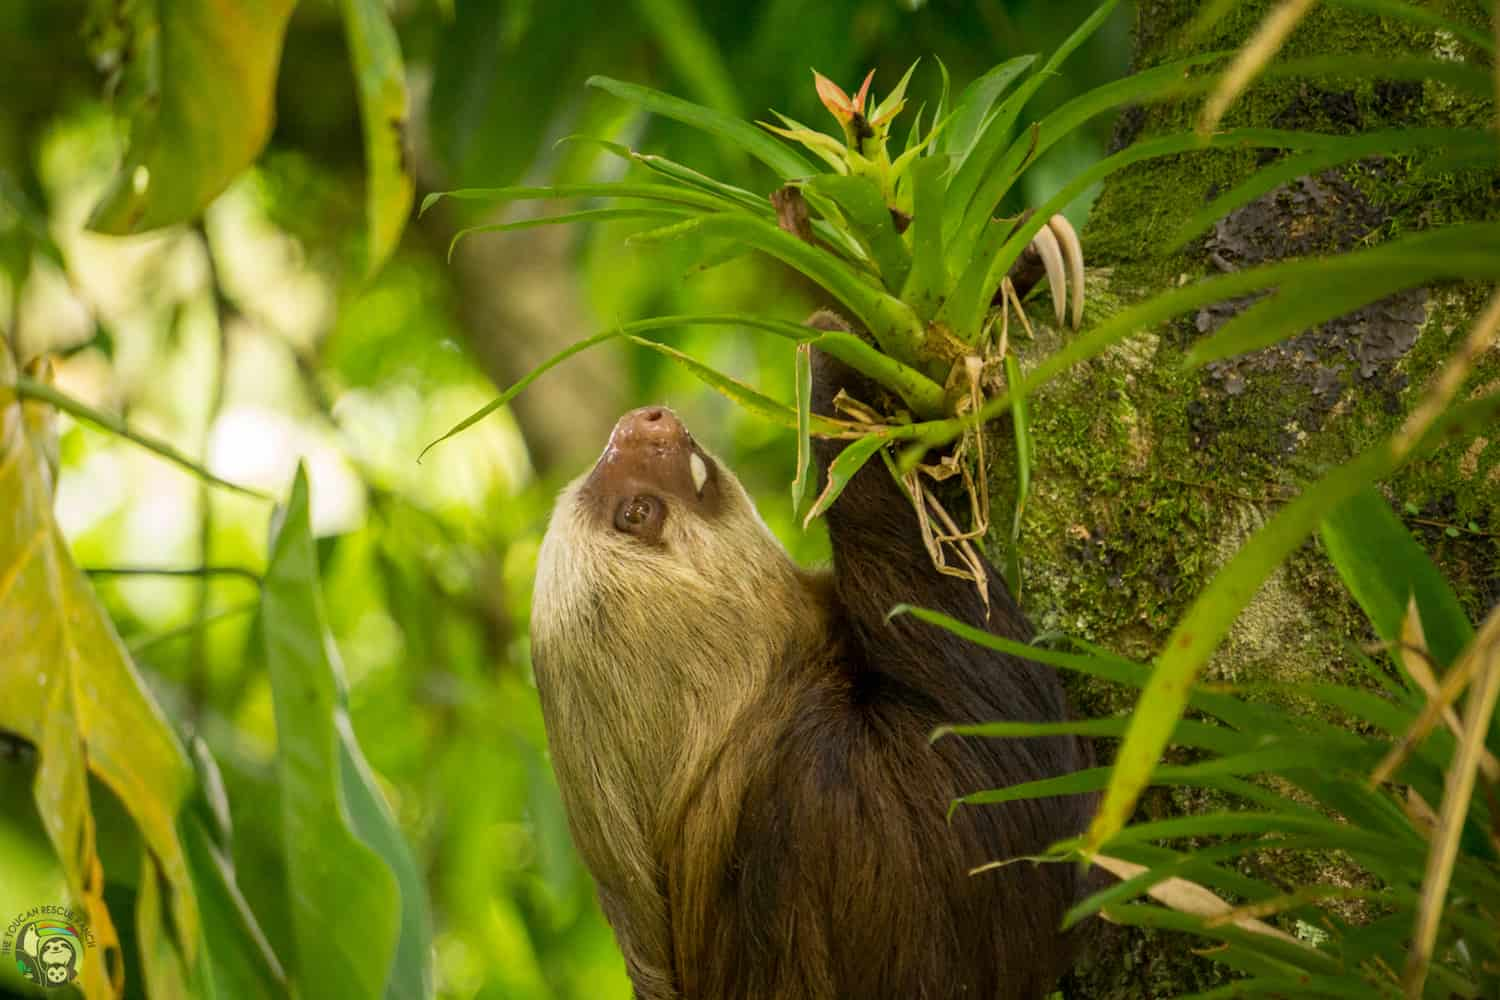 Lola the sloth in Costa Rica